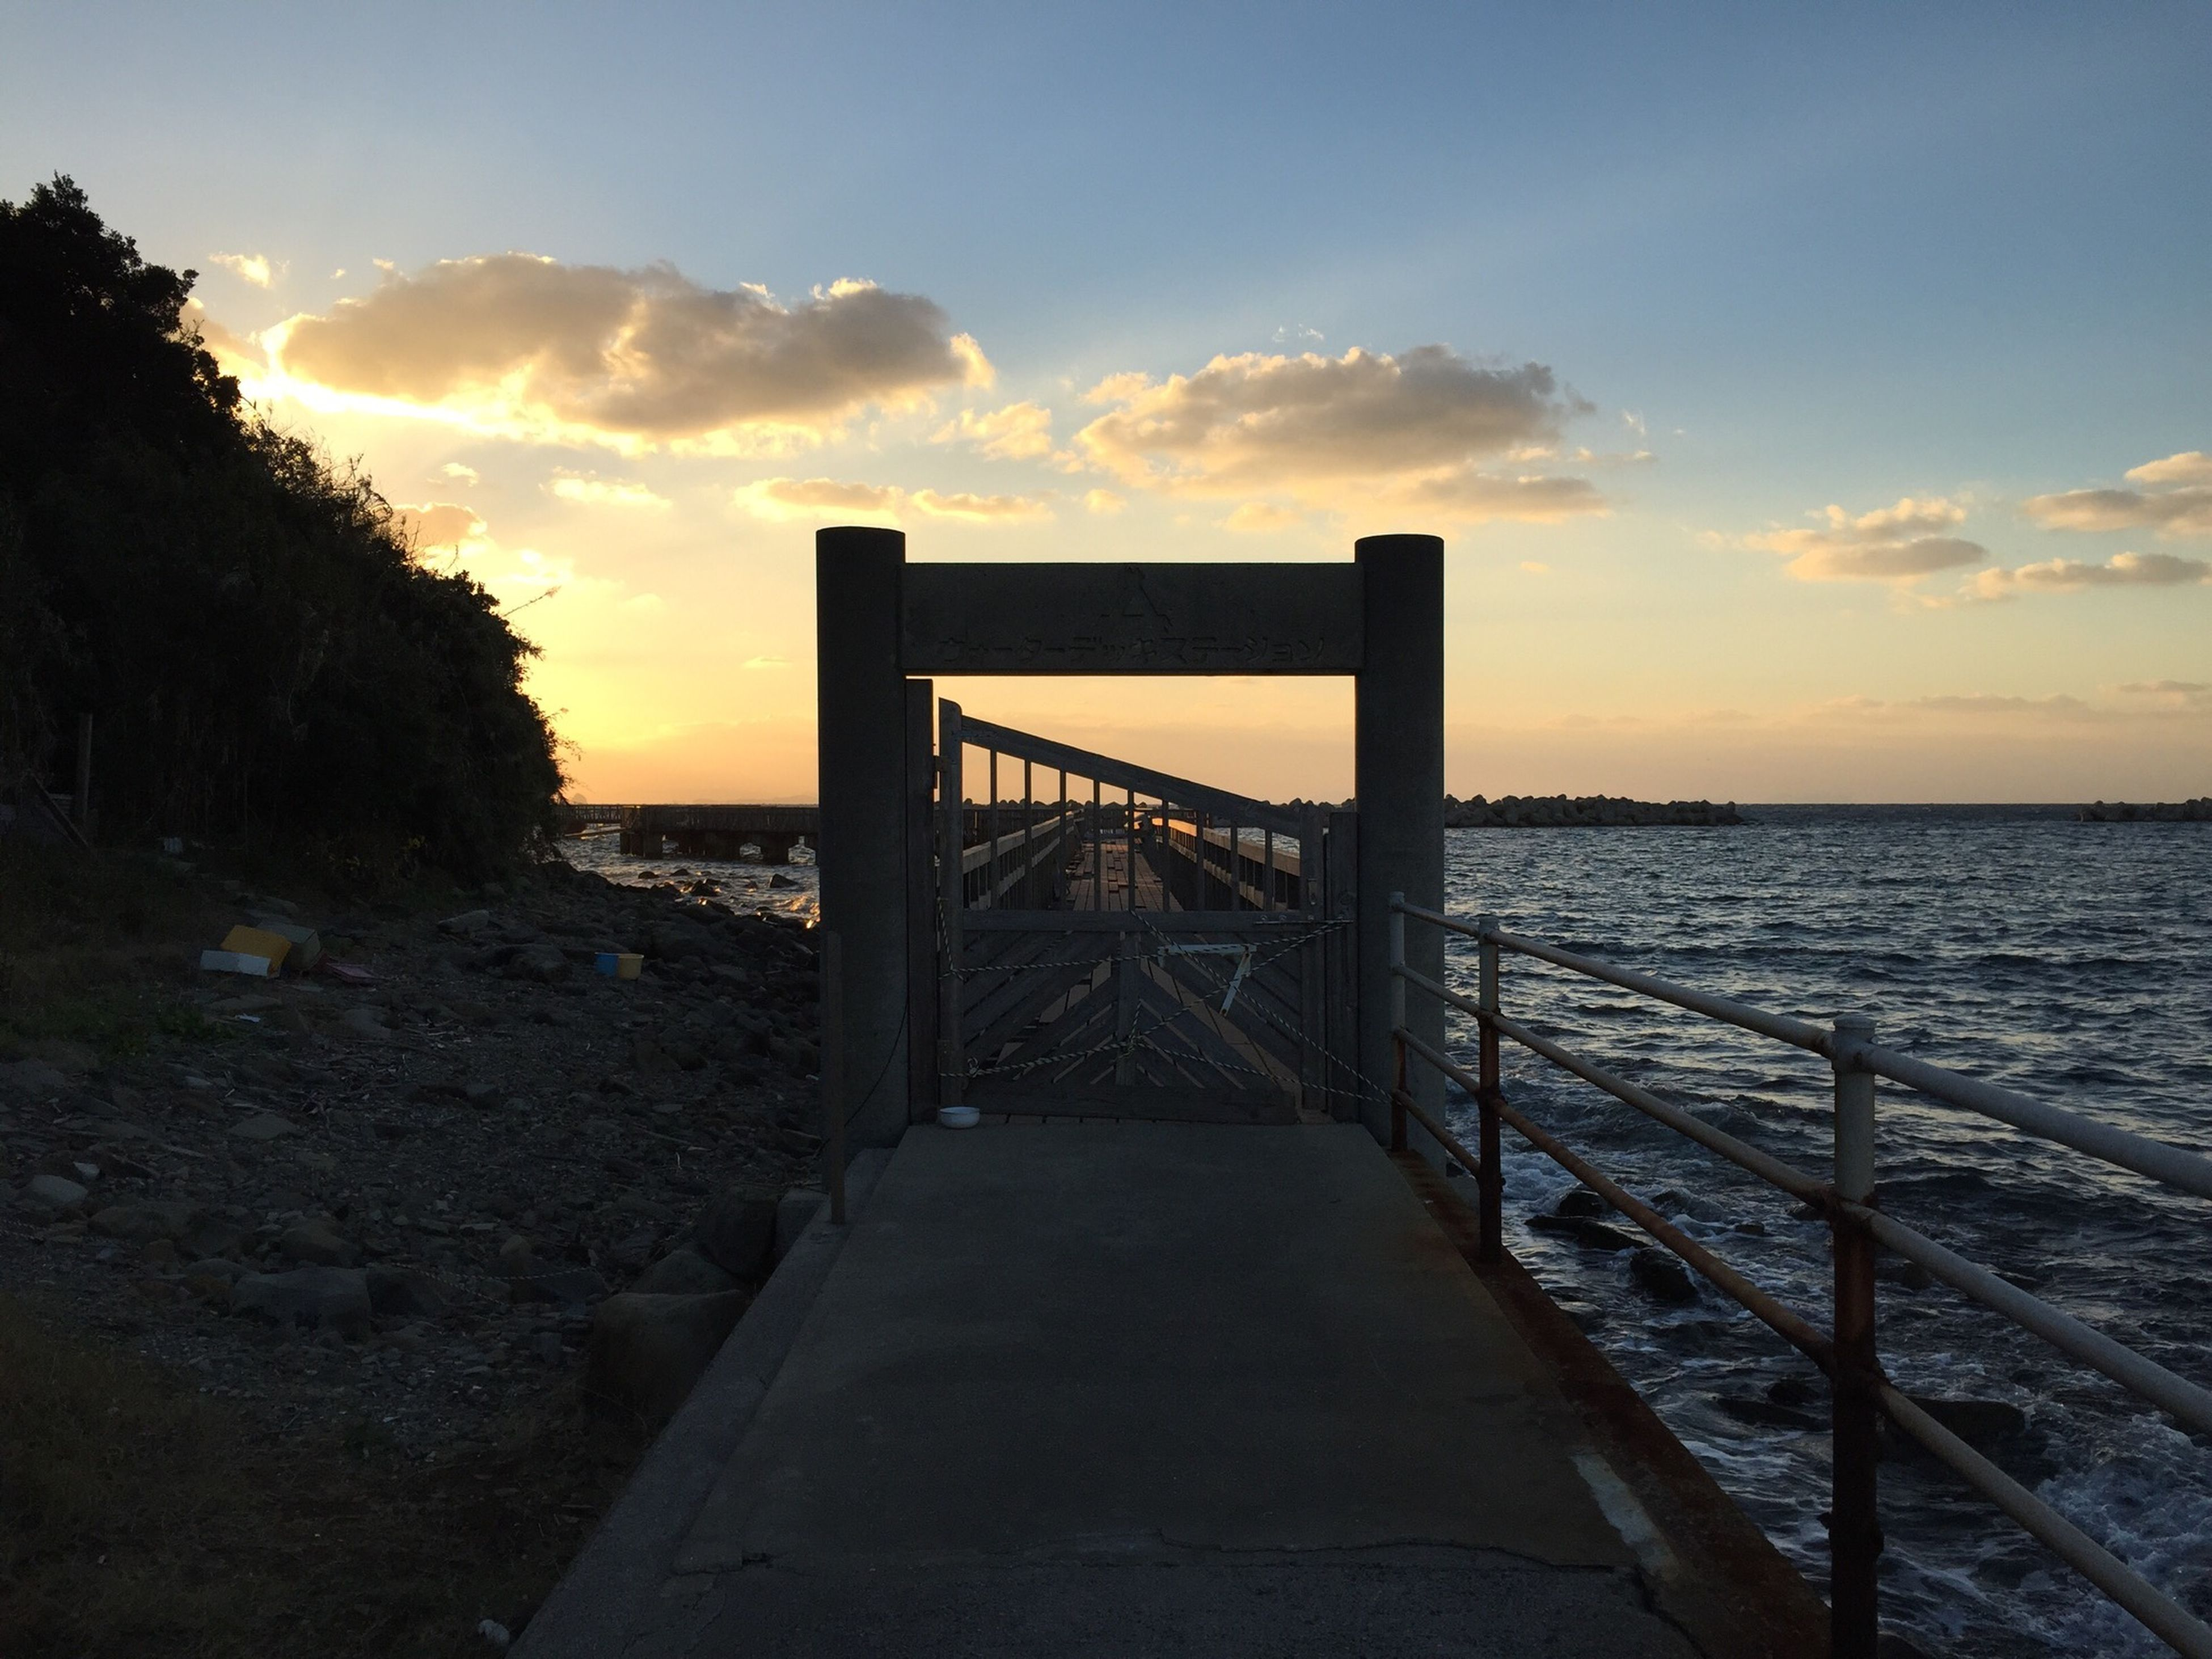 sunset, water, sea, sky, railing, tranquility, tranquil scene, scenics, beauty in nature, nature, pier, horizon over water, built structure, orange color, cloud - sky, the way forward, idyllic, connection, silhouette, dusk